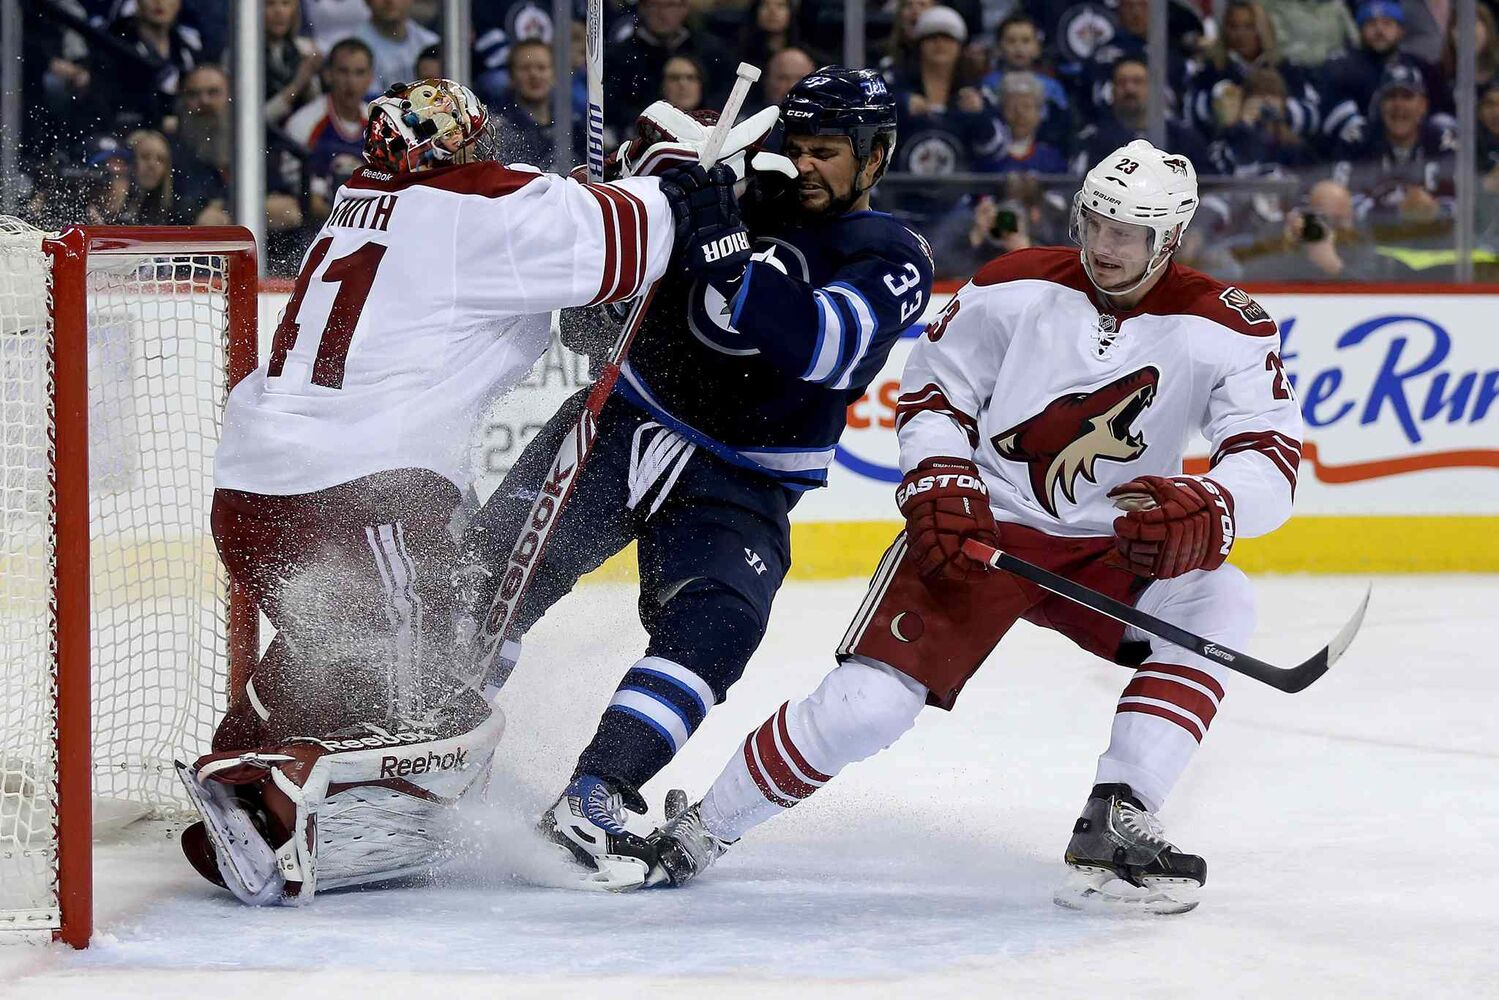 Jets forward Dustin Byfuglien crashes the Phoenix net and Coyotes goaltender Mike Smith, who gives Byfuglien a shot in the face. (TREVOR HAGAN / WINNIPEG FREE PRESS)